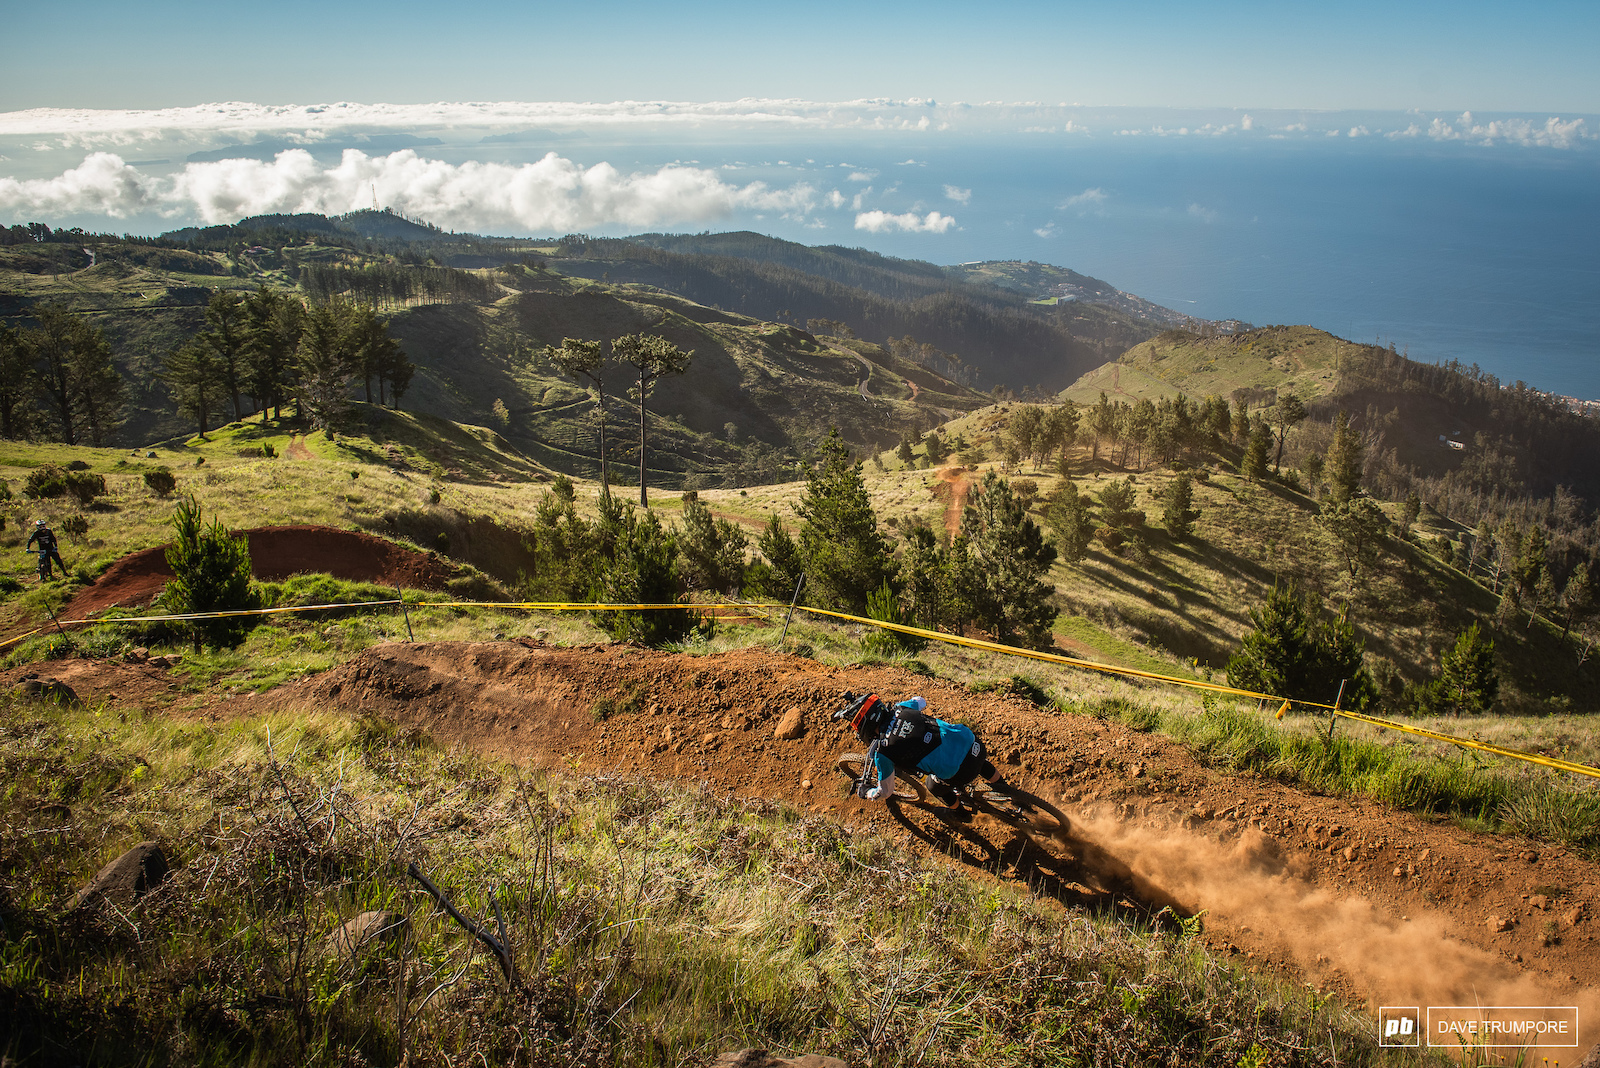 Youn Deniaud pinned down stage 4 that will kick off day two of racing in Madeira